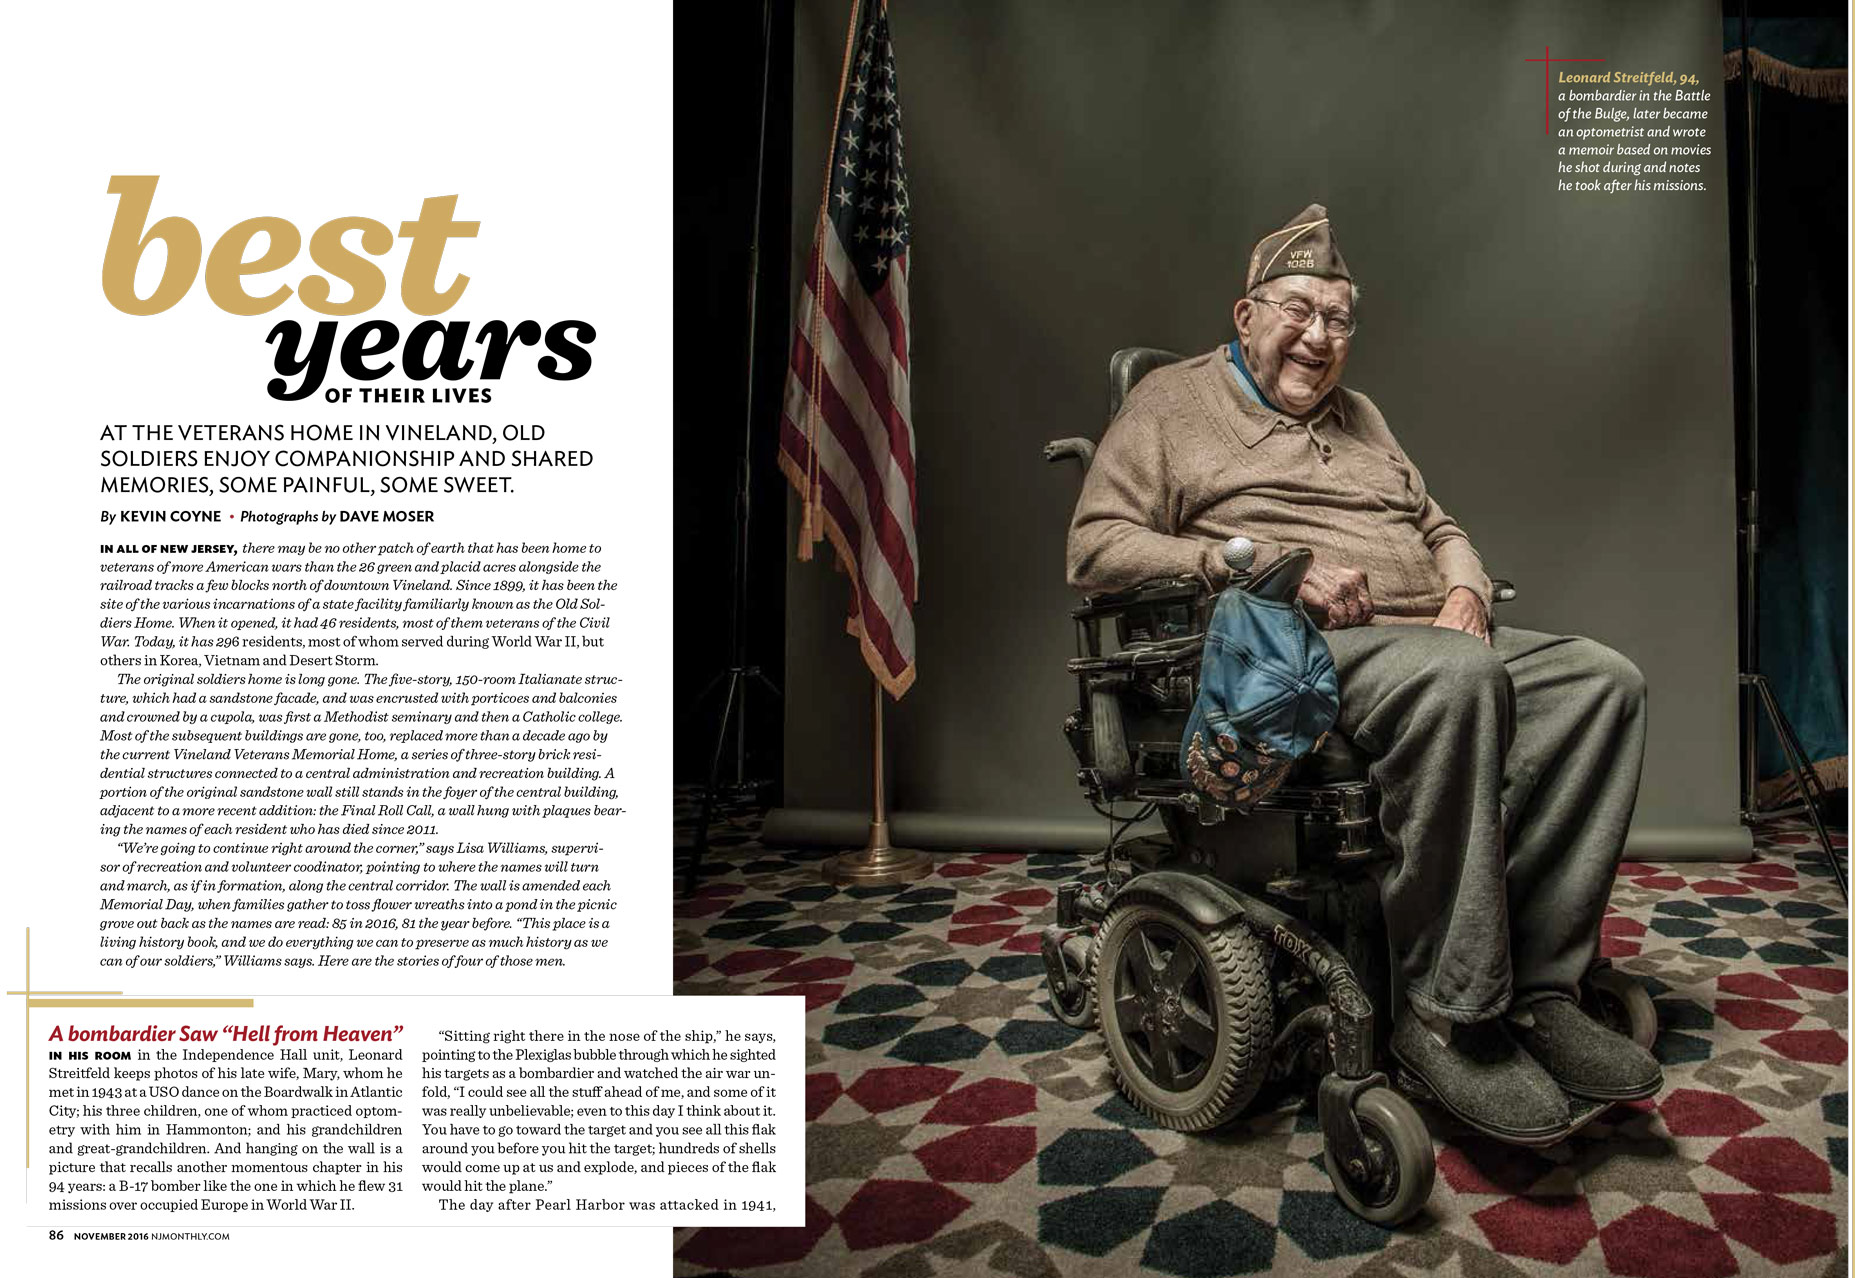 magazine-veteran-flag-vineland-wheelchair-1